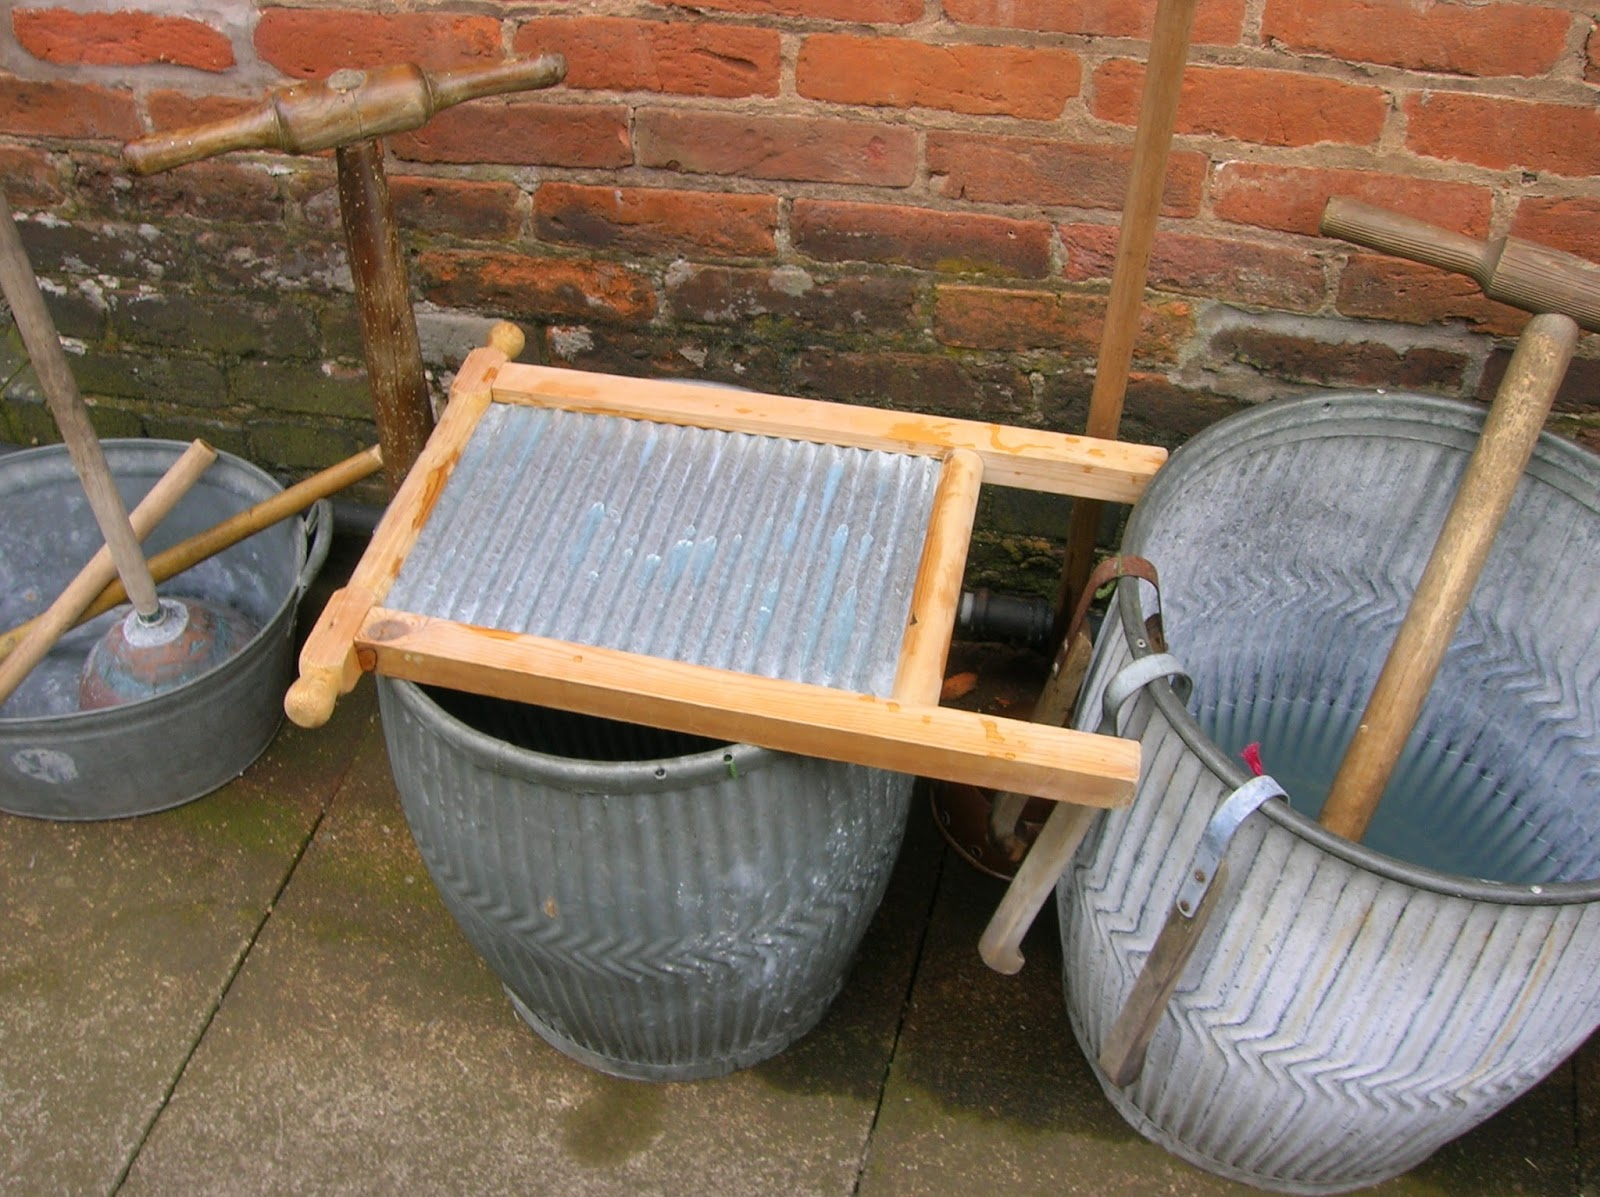 Old Fashioned Wash Day - Dolly Tubs, Posser and Scrubbing Board